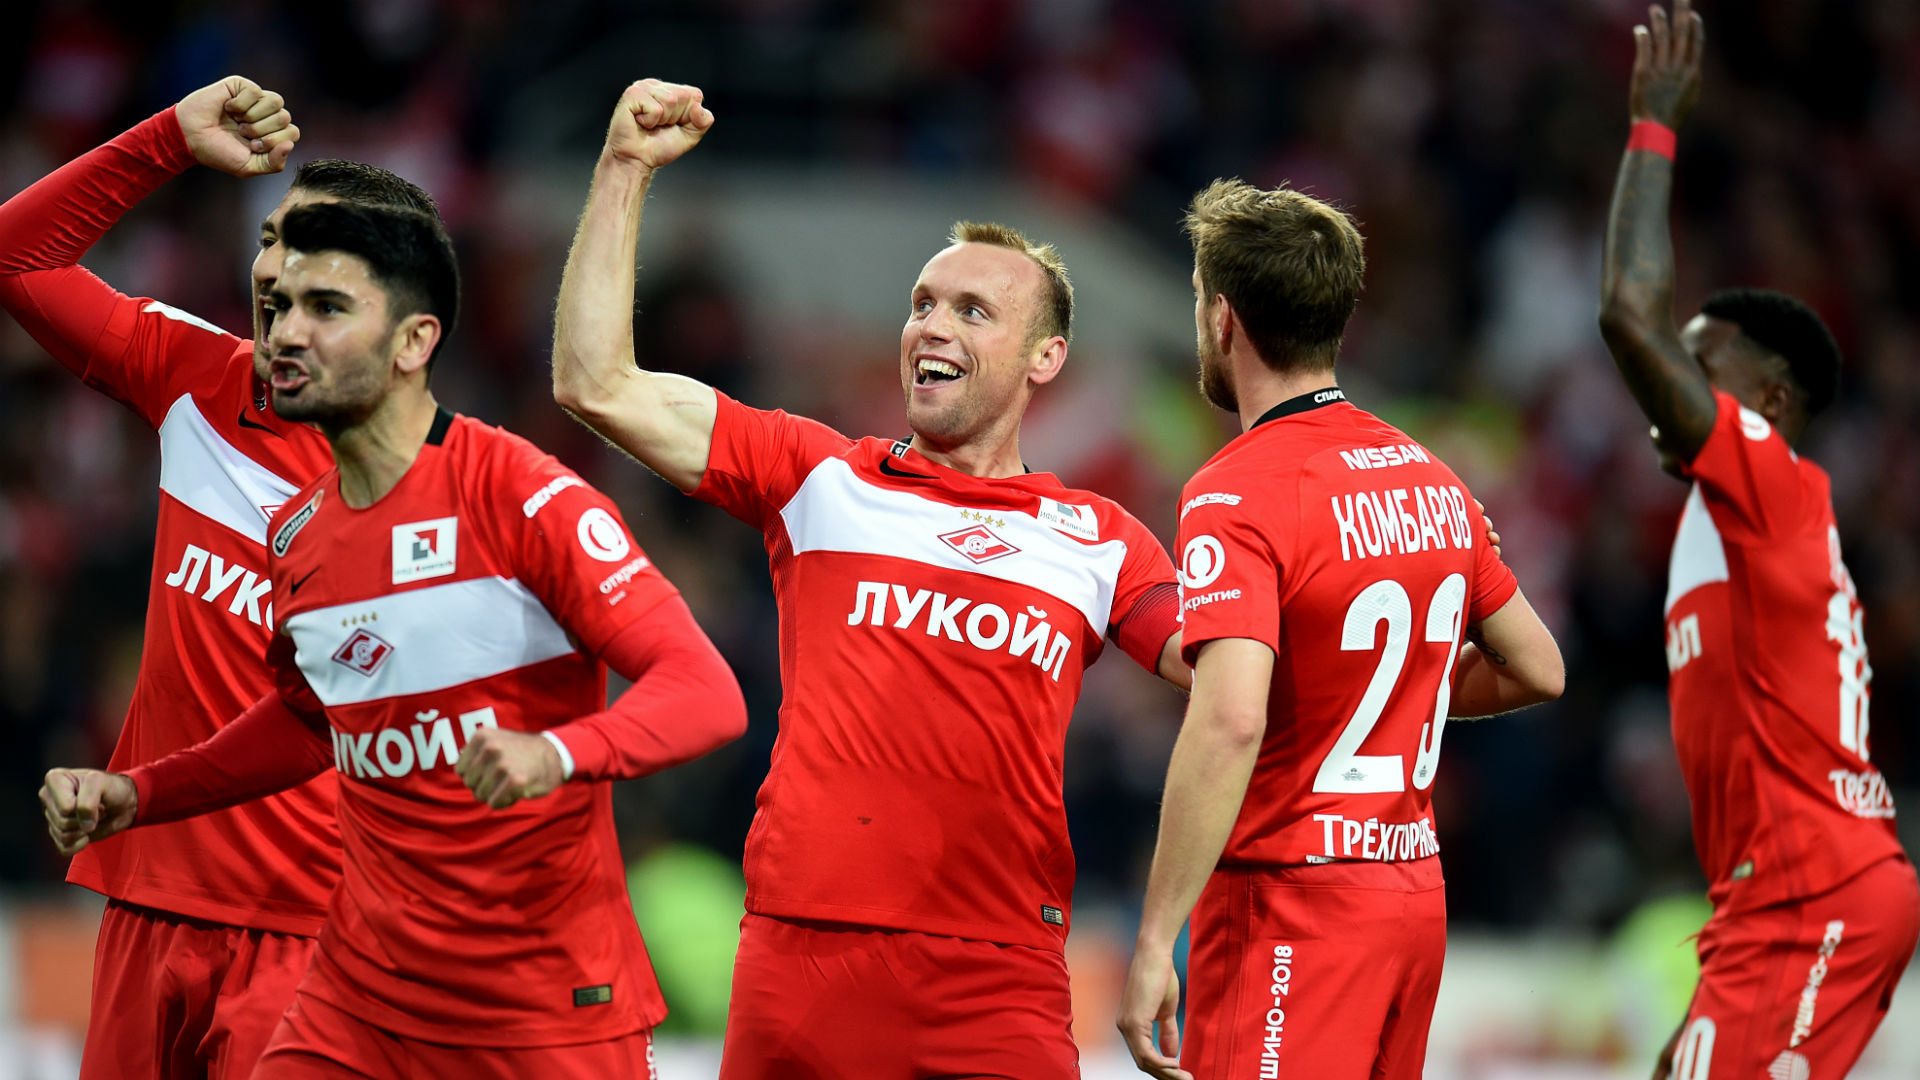 CSKA scored a goal for Spartak in added time 33